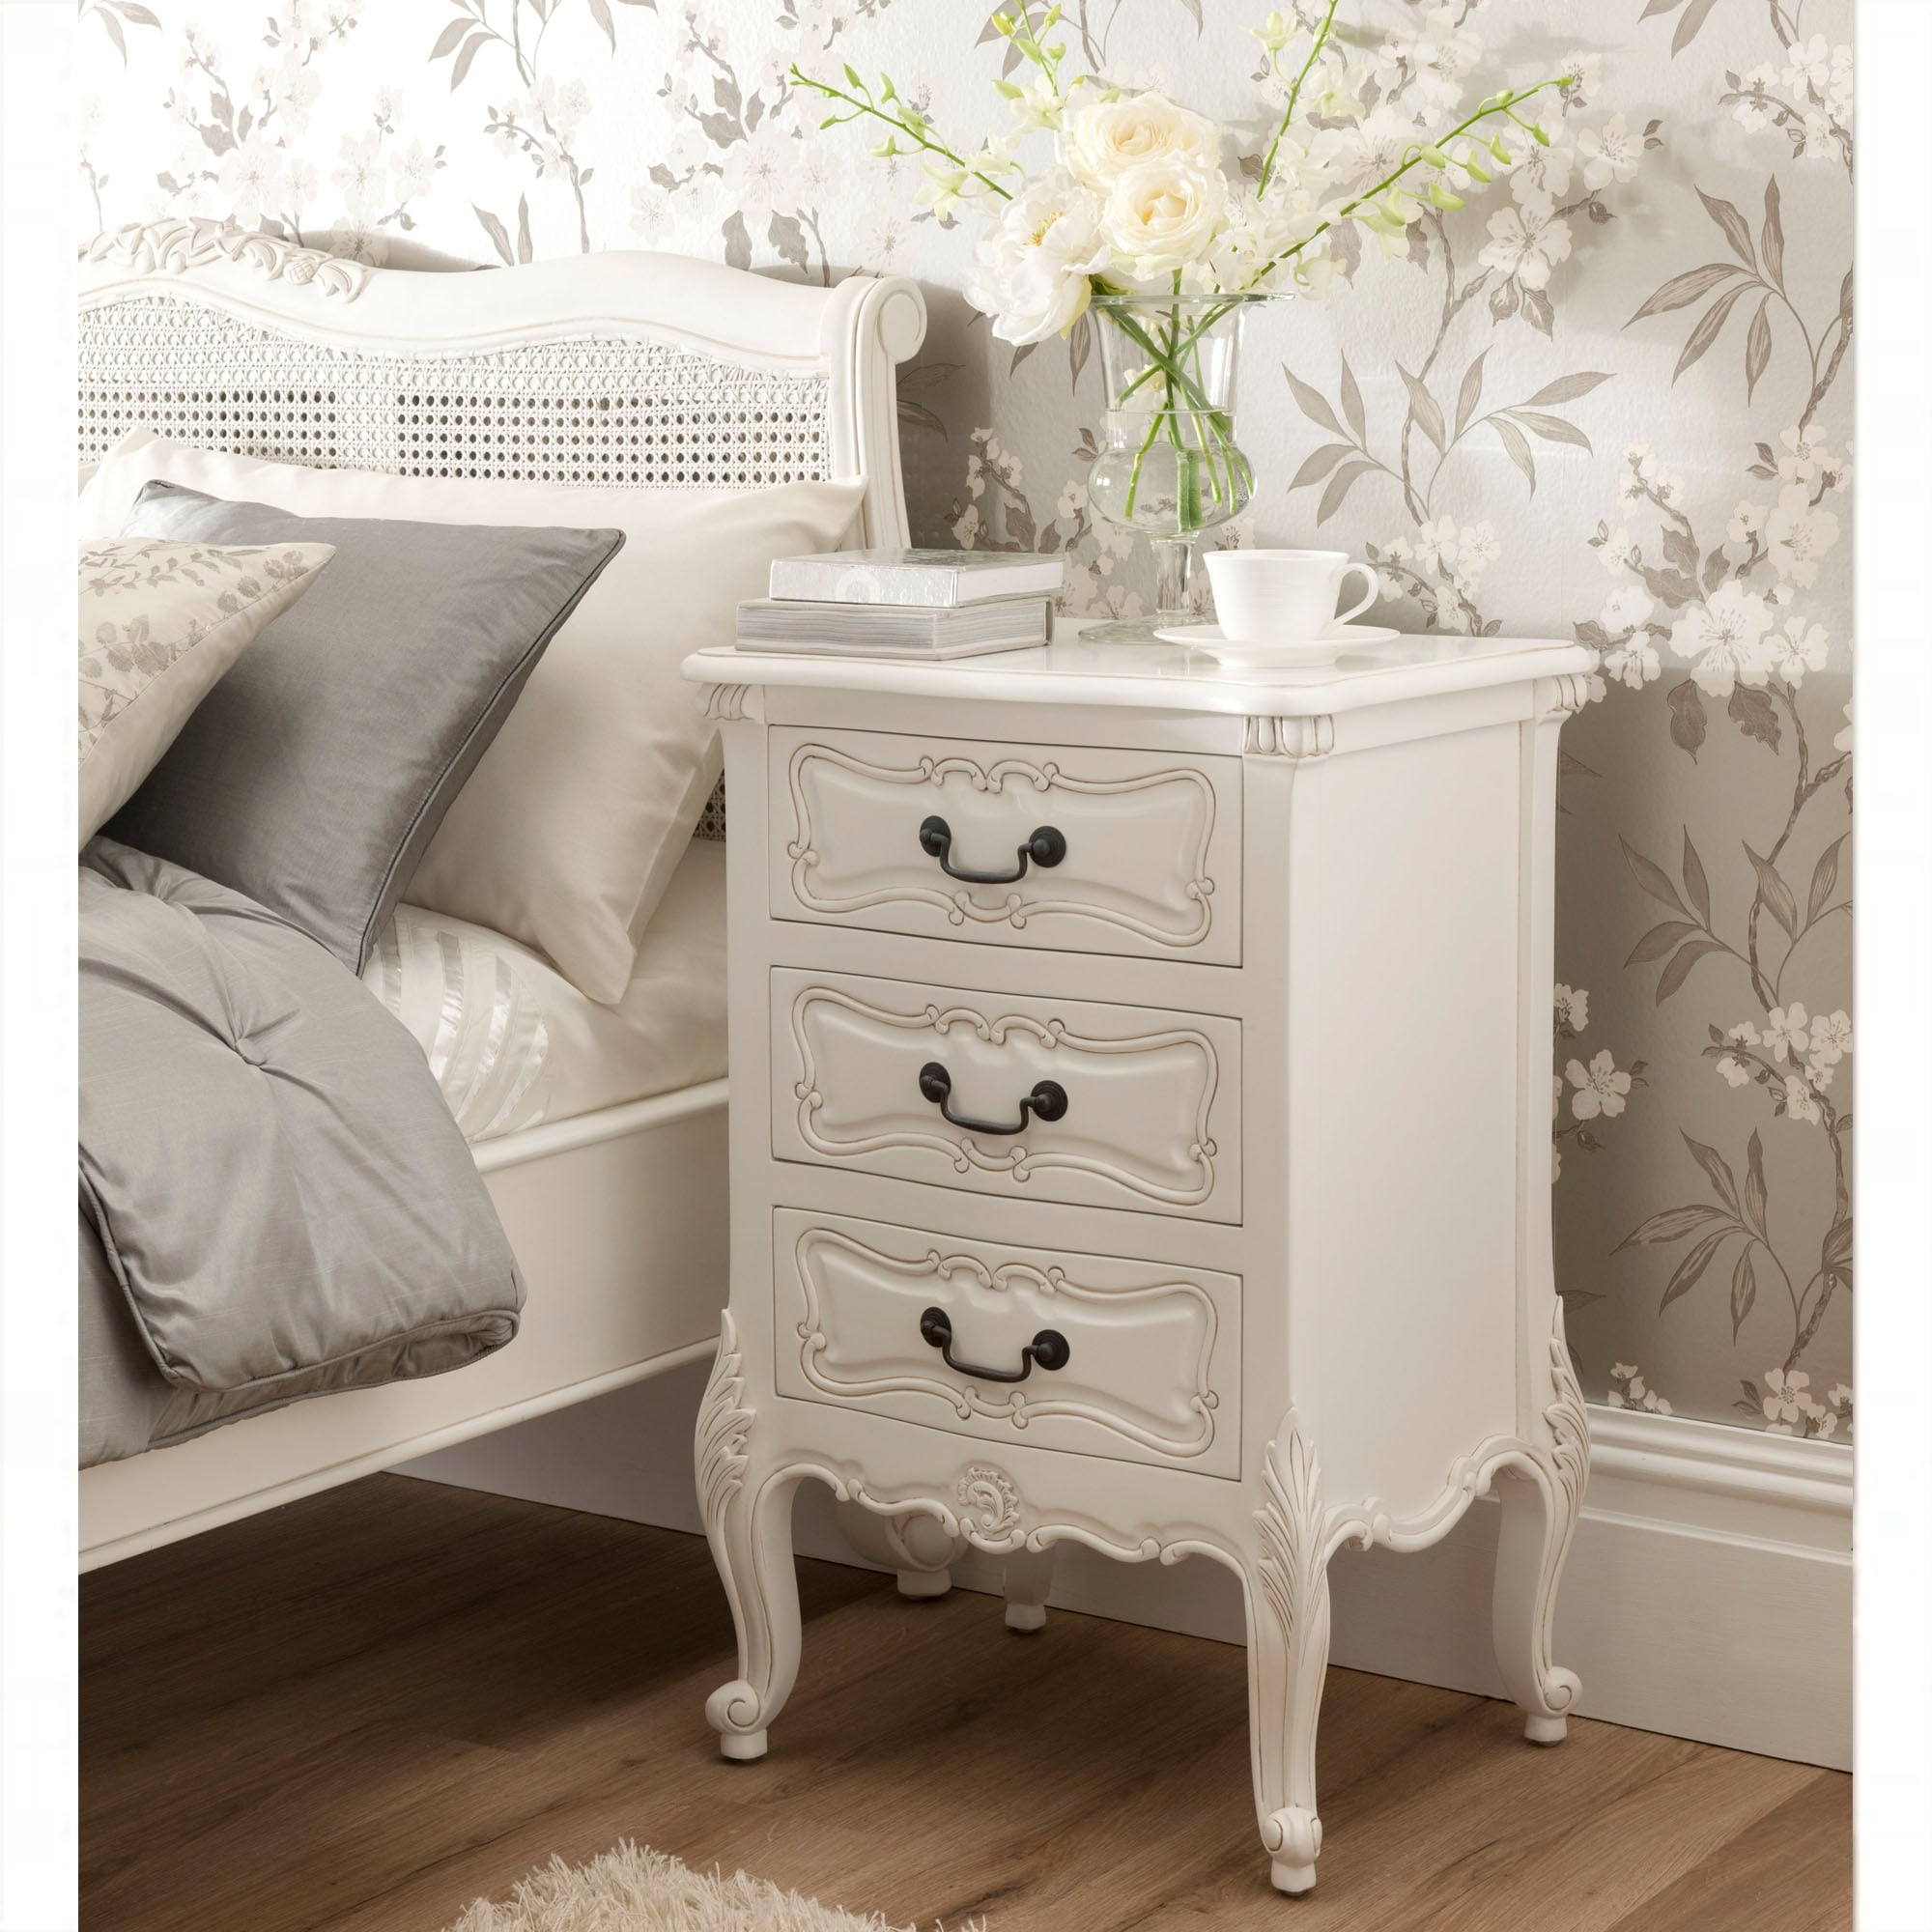 French furniture - La Rochelle Antique French Style Bedside